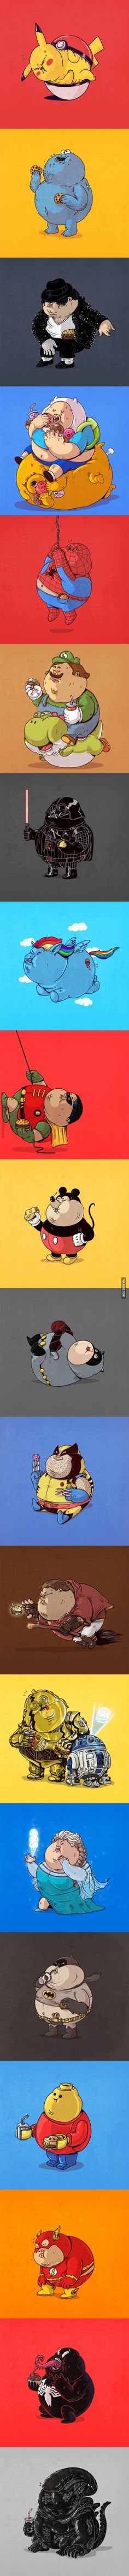 - X - Obesity Funny Art, The Funny, Funny Memes, Geek Culture, Pop Culture, Caricature, Pokemon, Funny Comics, Cartoon Art